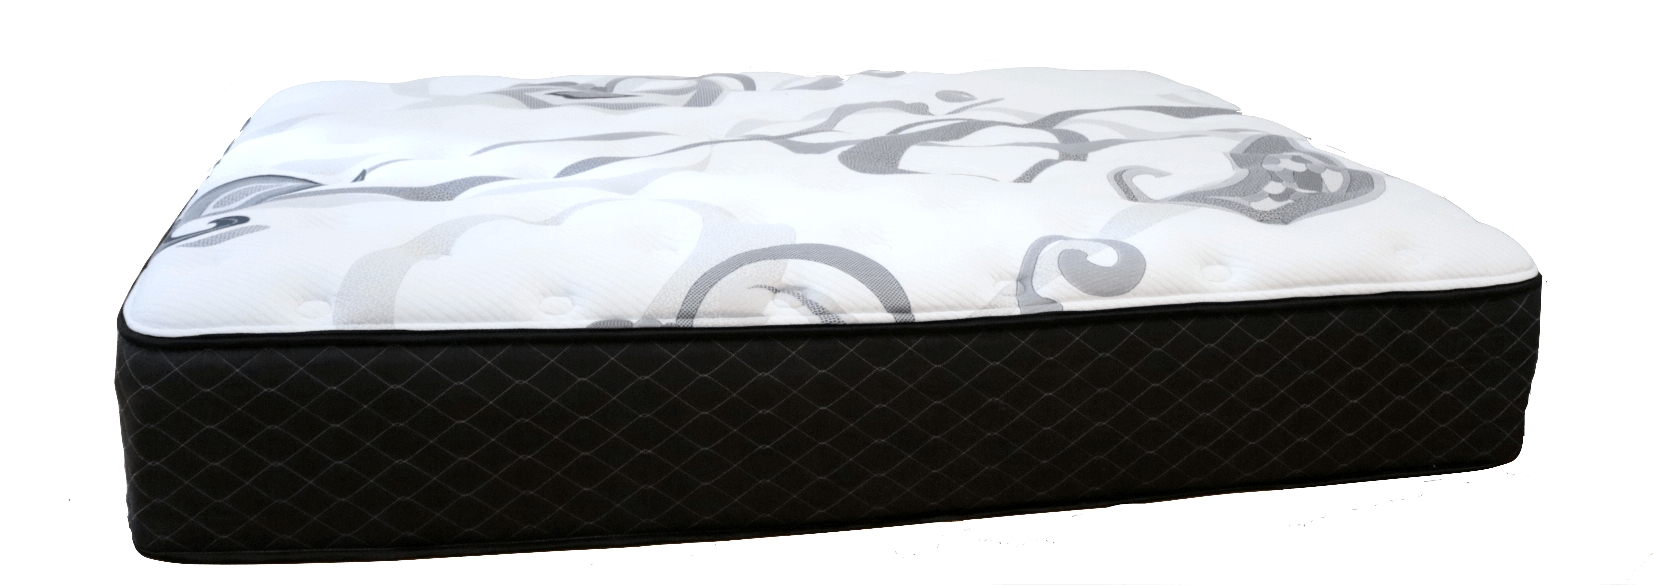 Best Traditional Mattress The 10 Best Mattress For 2018 Best Mattress In A Box List